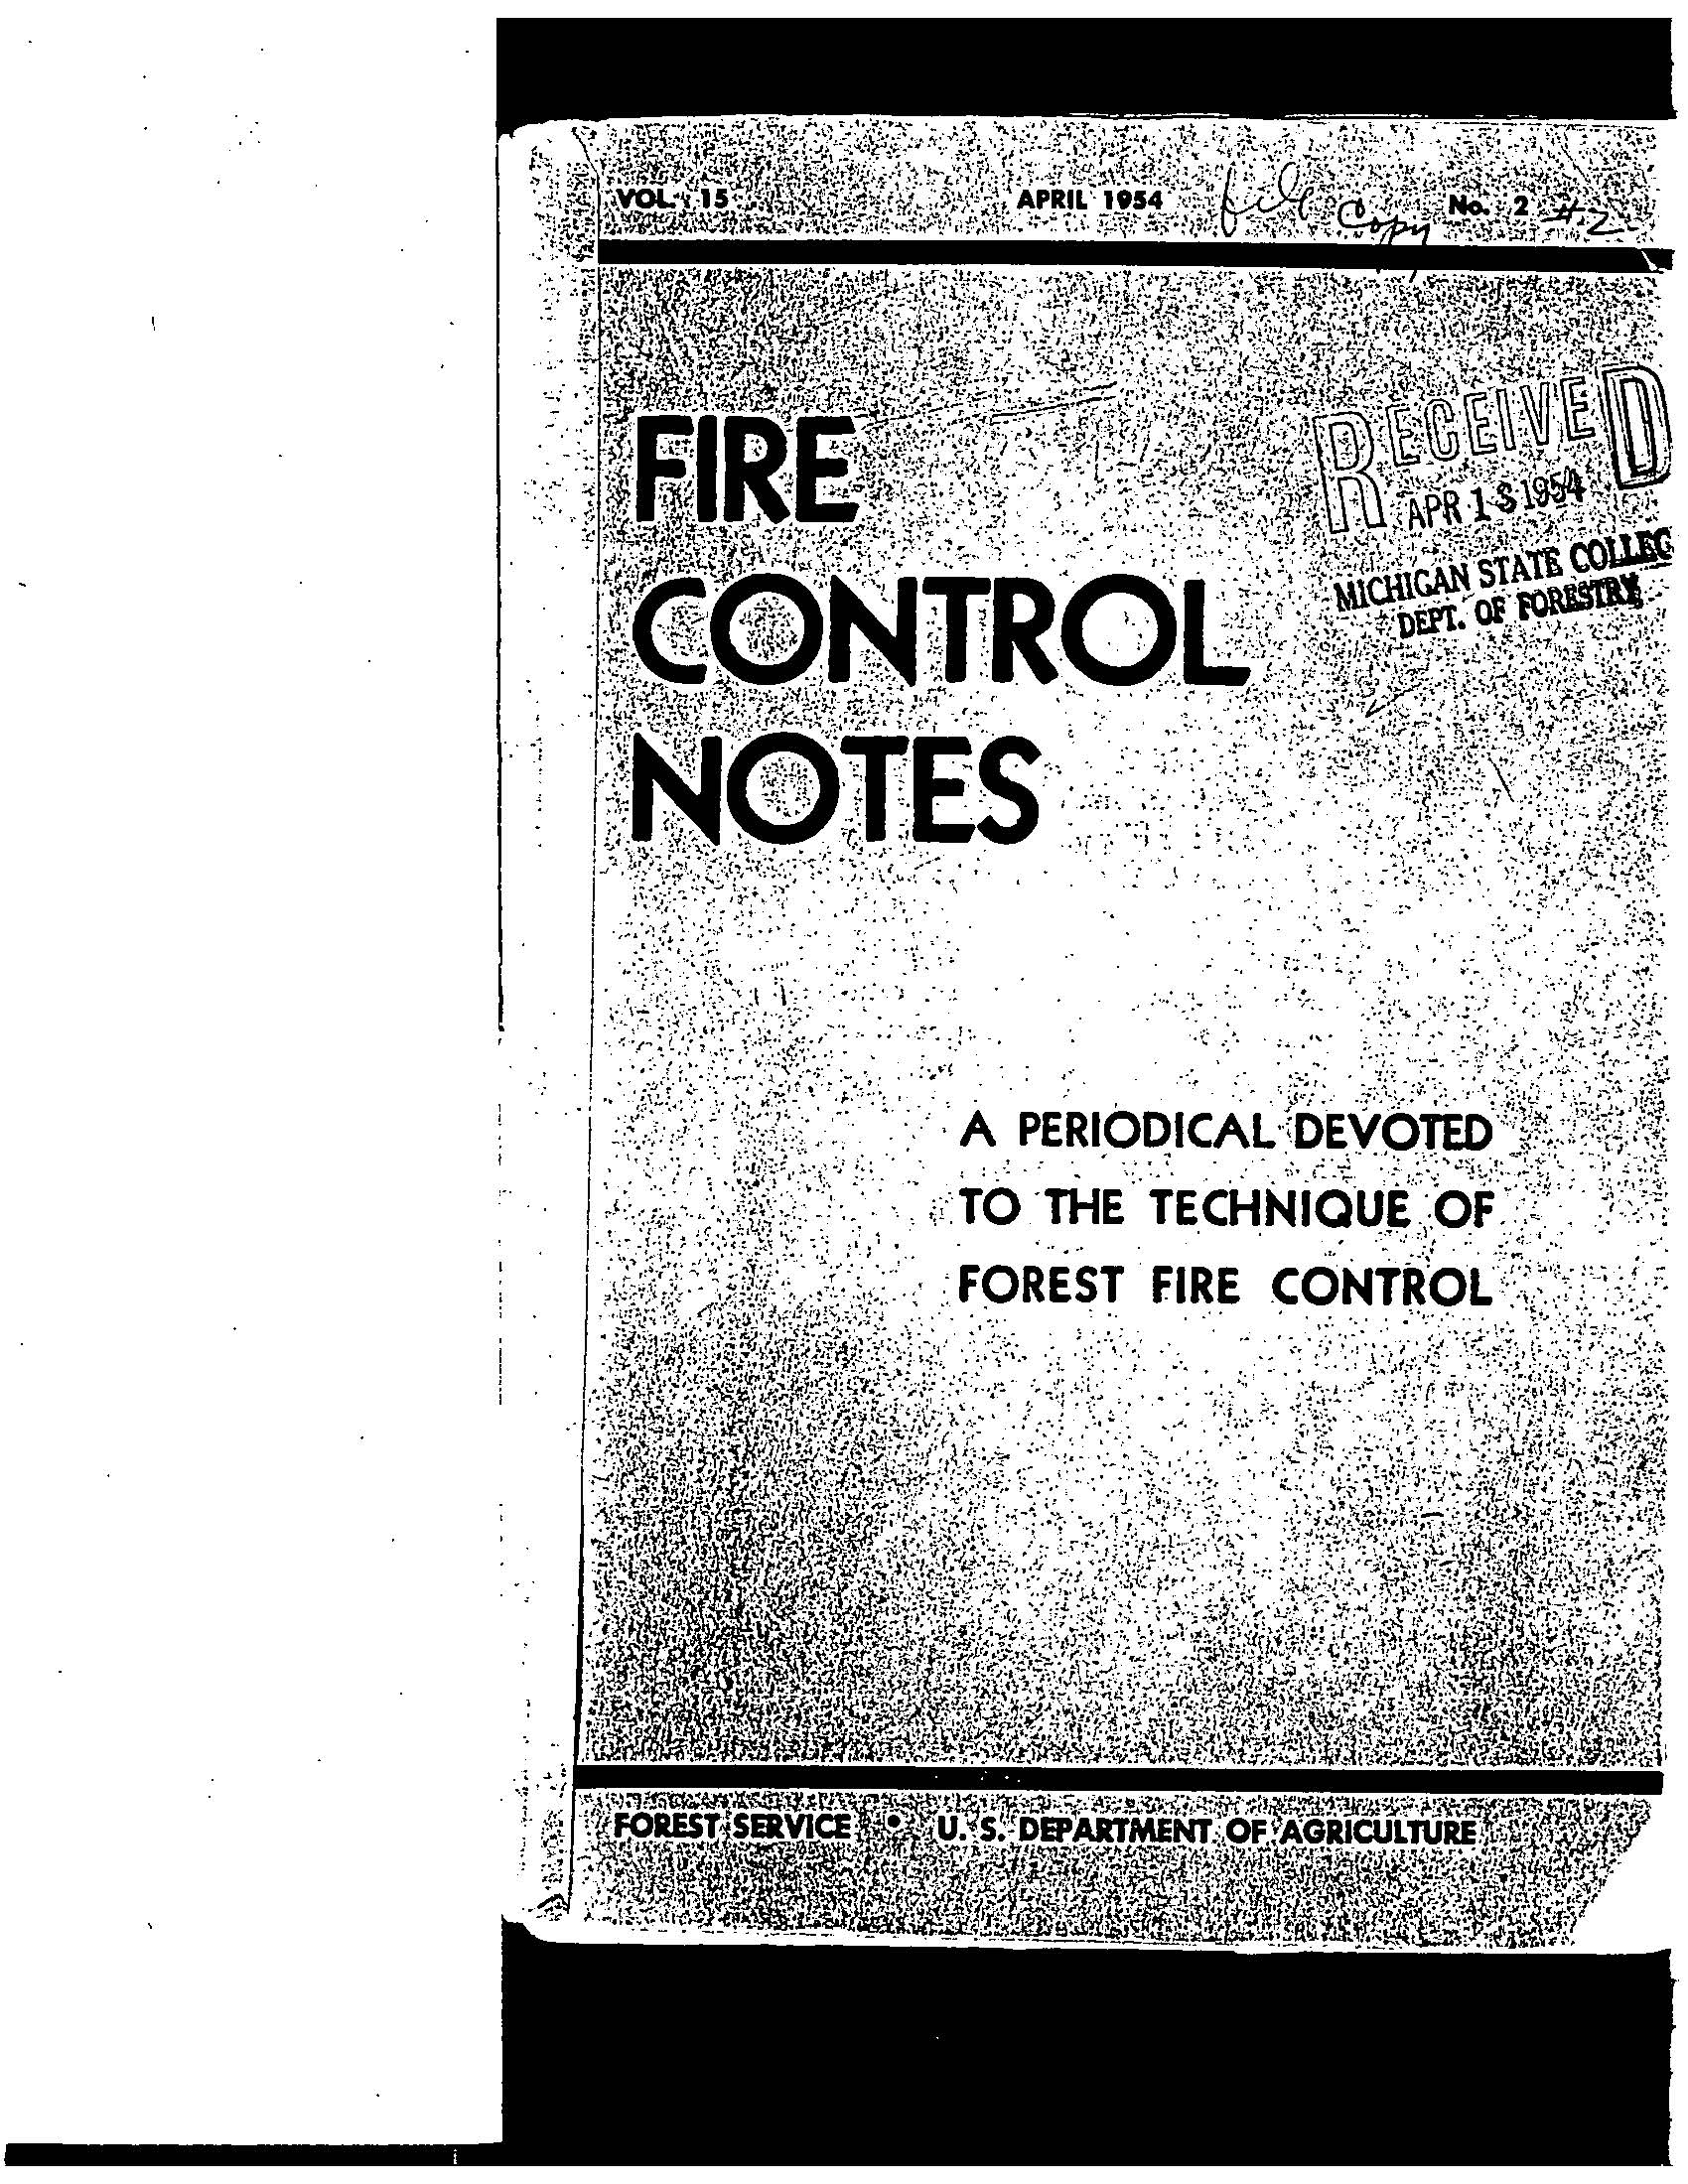 Cover of Fire Management Today Volume 15, Issue 02